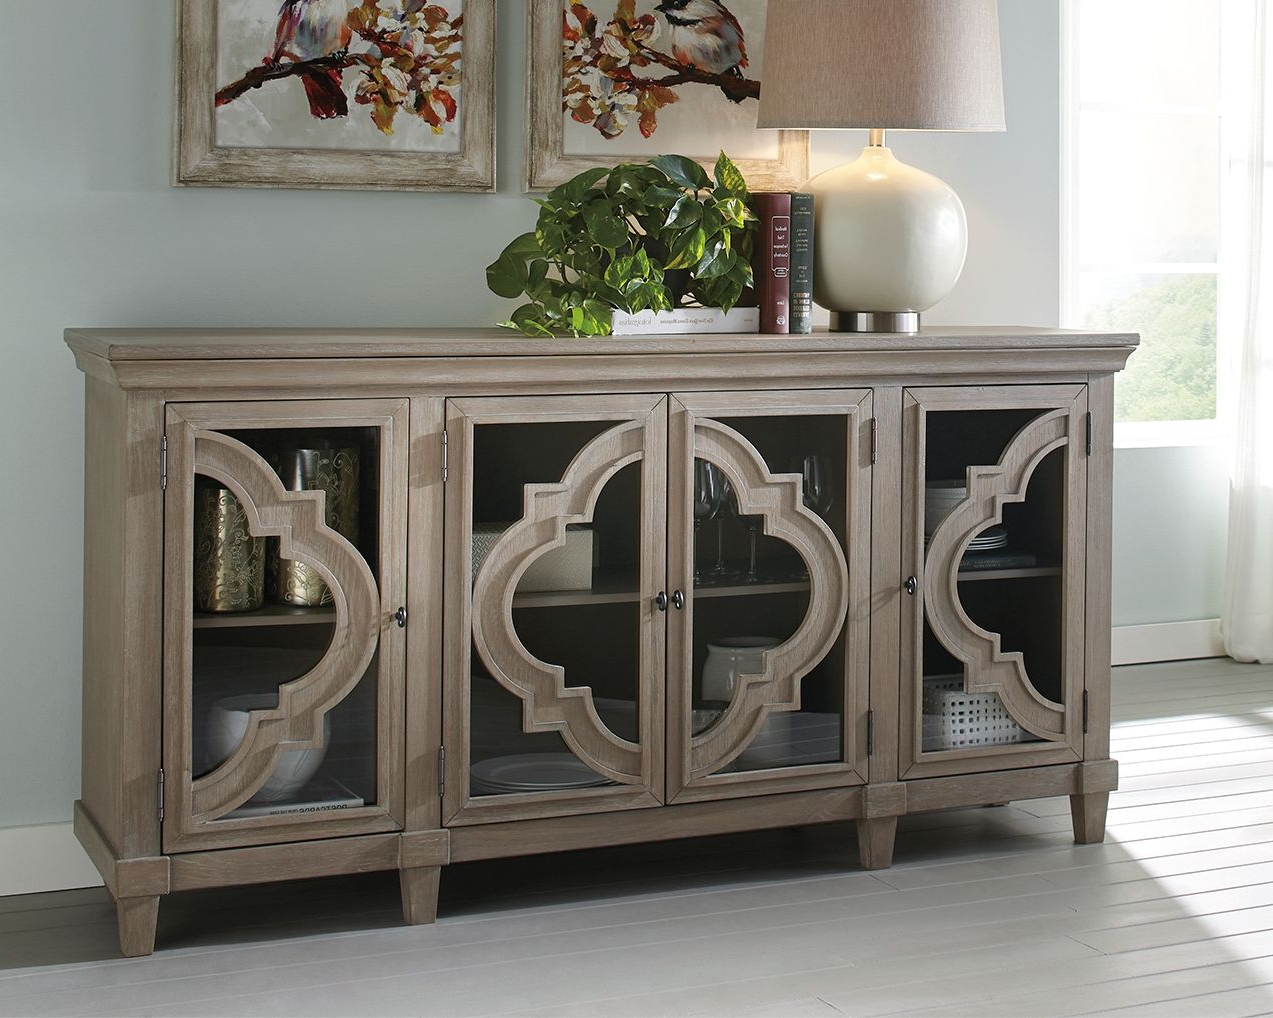 Fossil Ridge Accent Cabinet | Products In 2019 | Living Room With Regard To Raquette Sideboards (View 10 of 20)